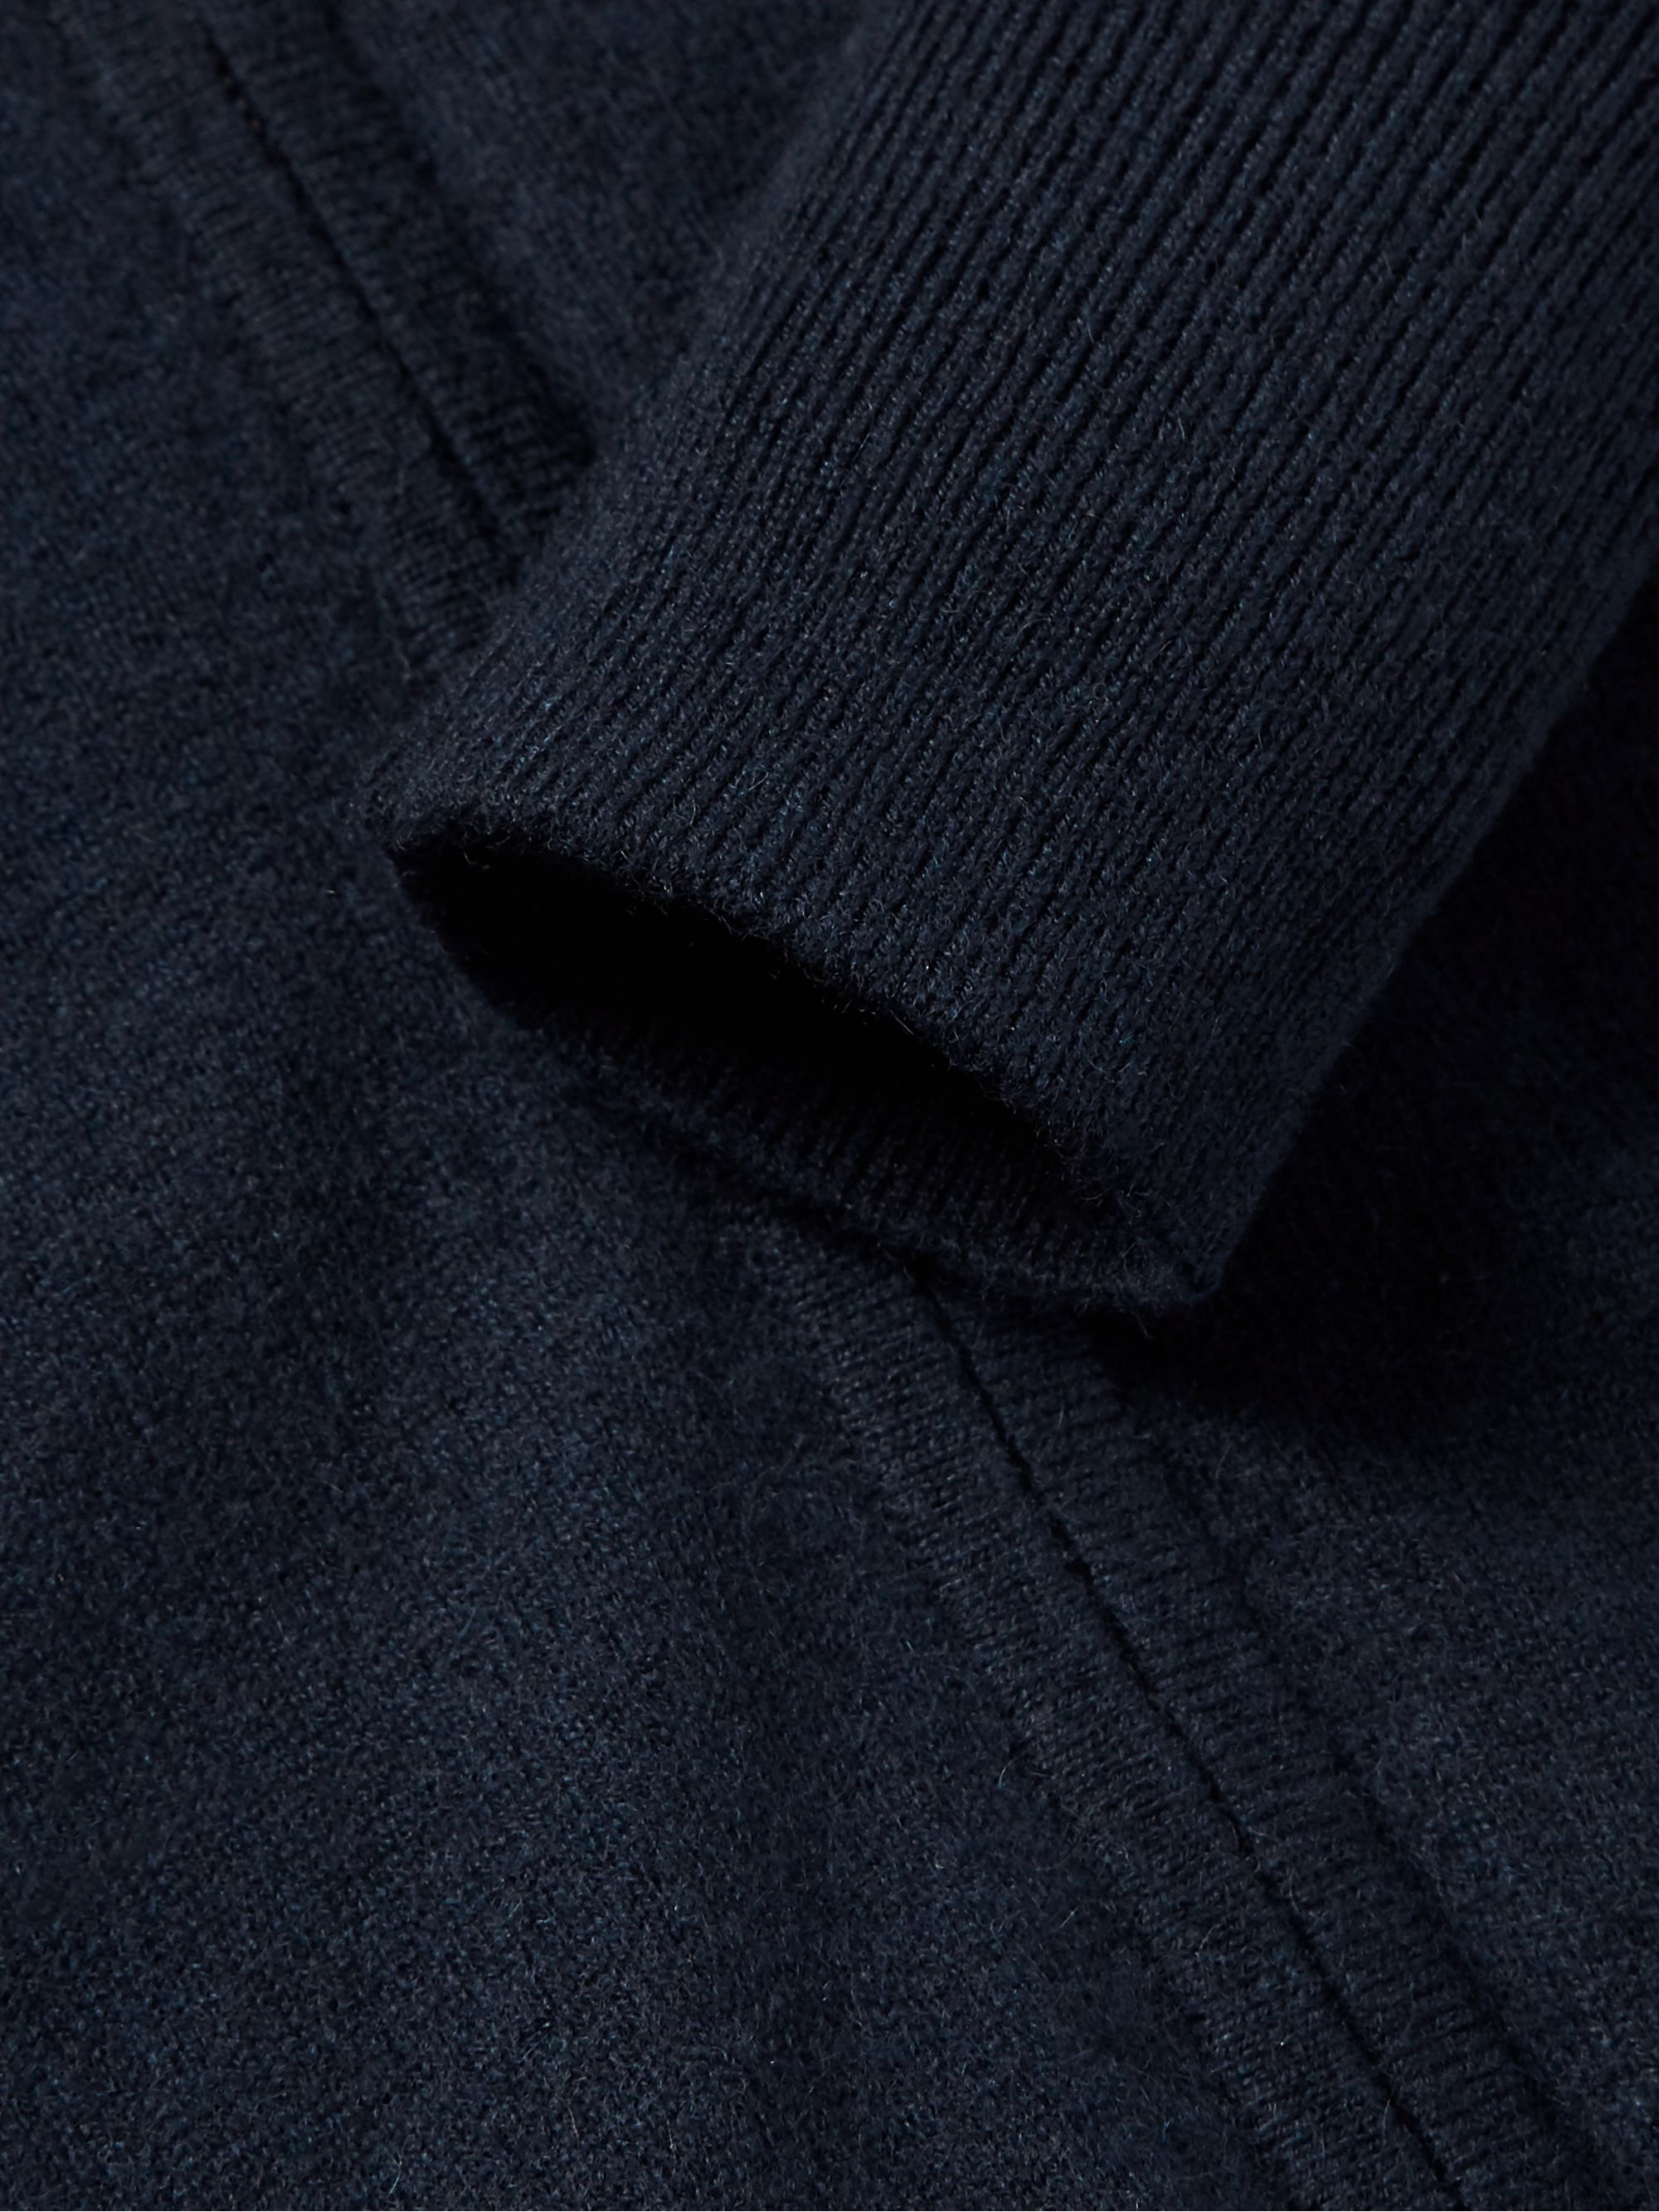 Sid Mashburn Cashmere Zip-Up Sweater